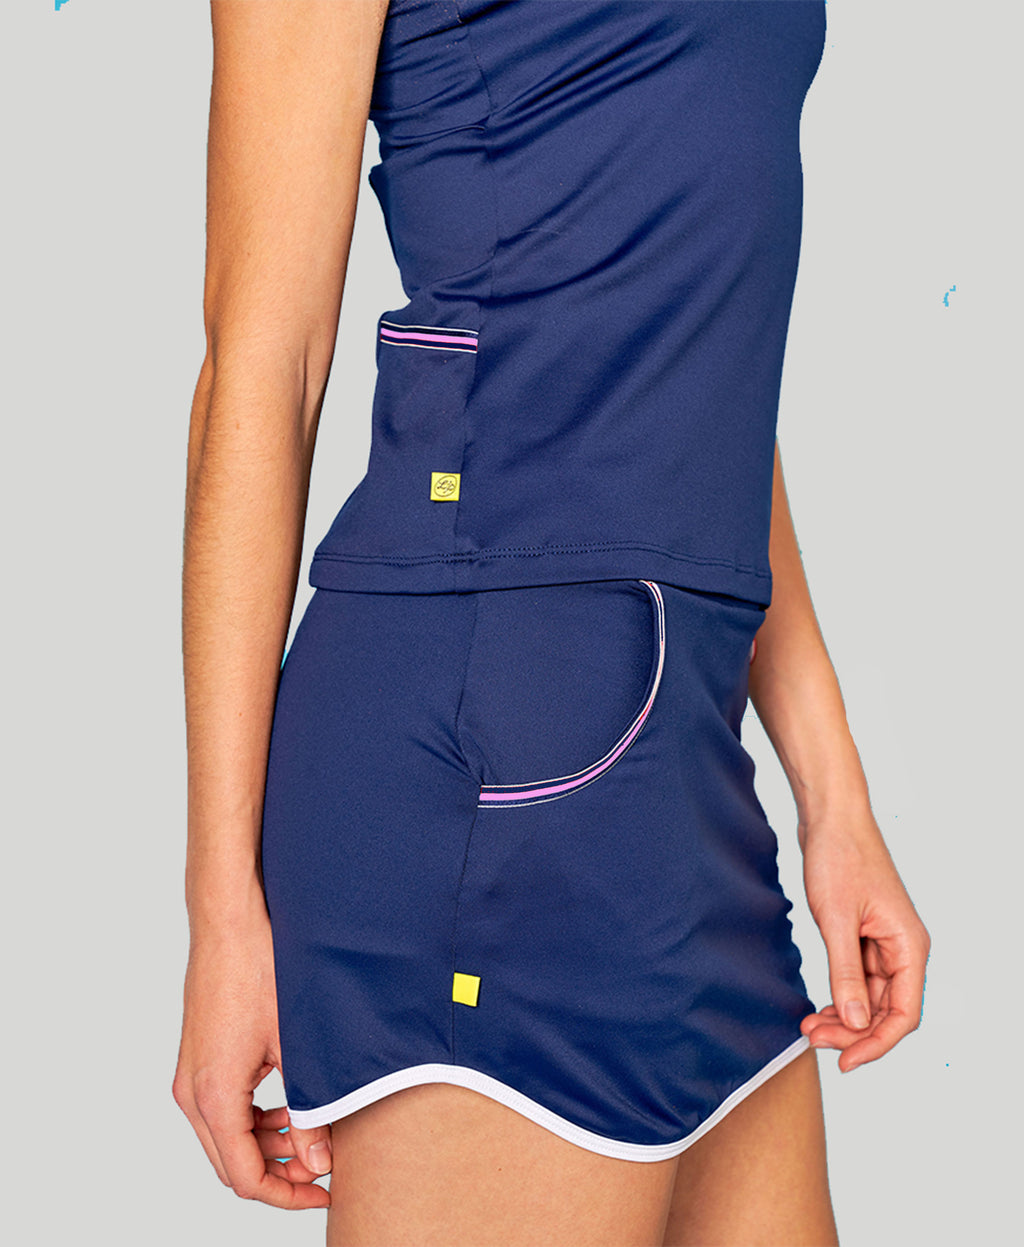 Baseline Pocket Skort - Navy - Pink/Blue